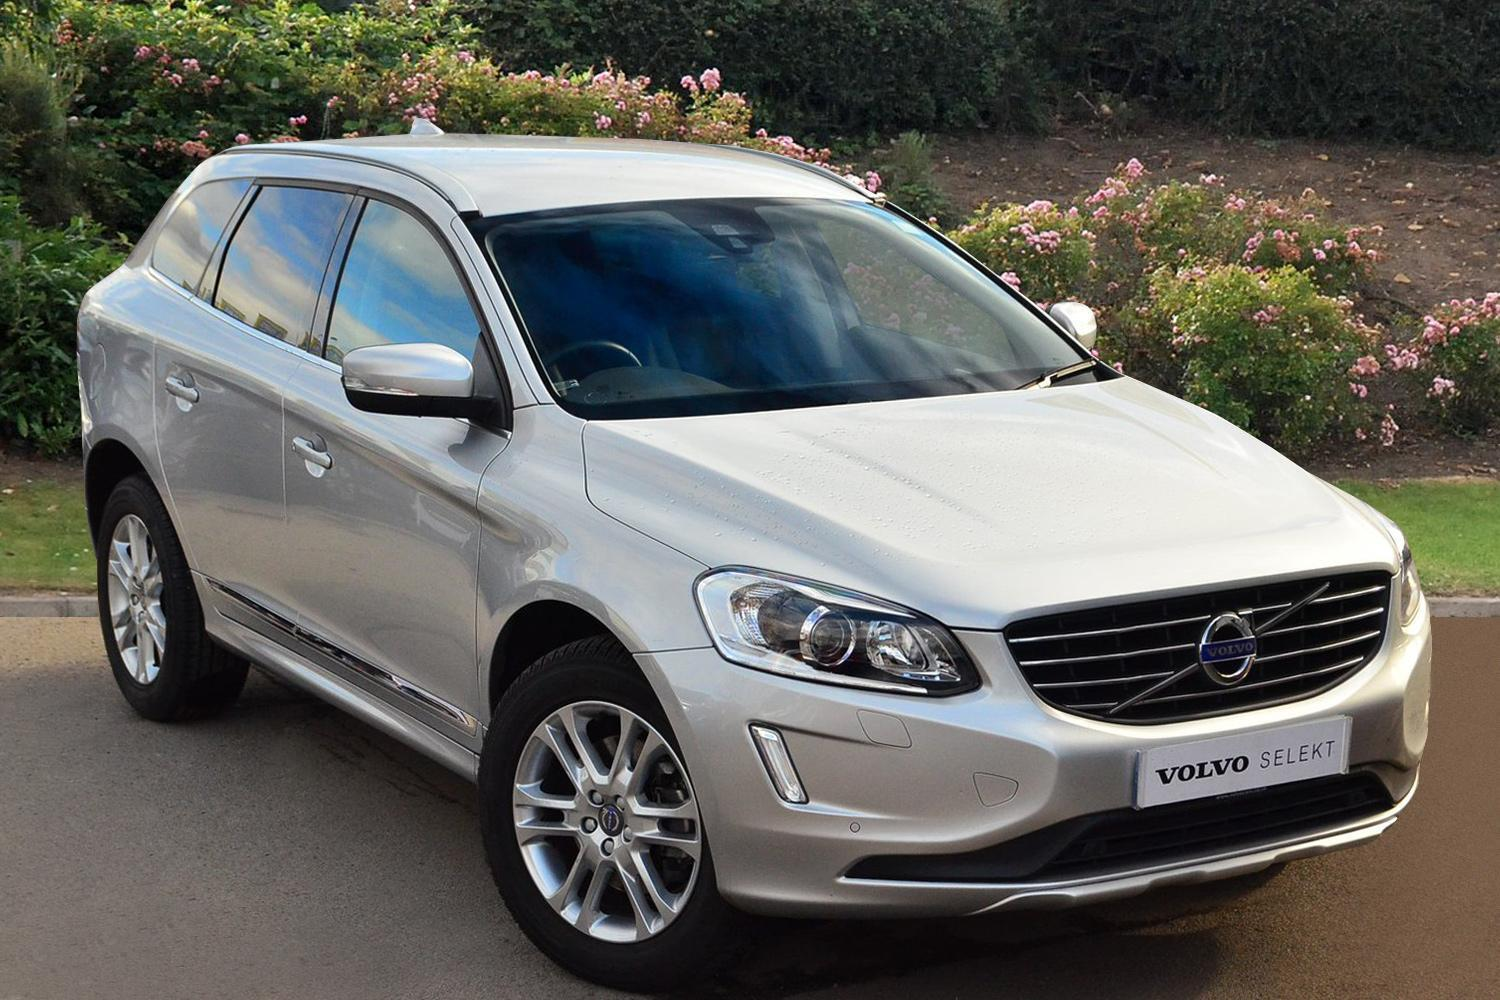 used volvo xc60 d5 215 se lux nav 5dr awd geartronic. Black Bedroom Furniture Sets. Home Design Ideas